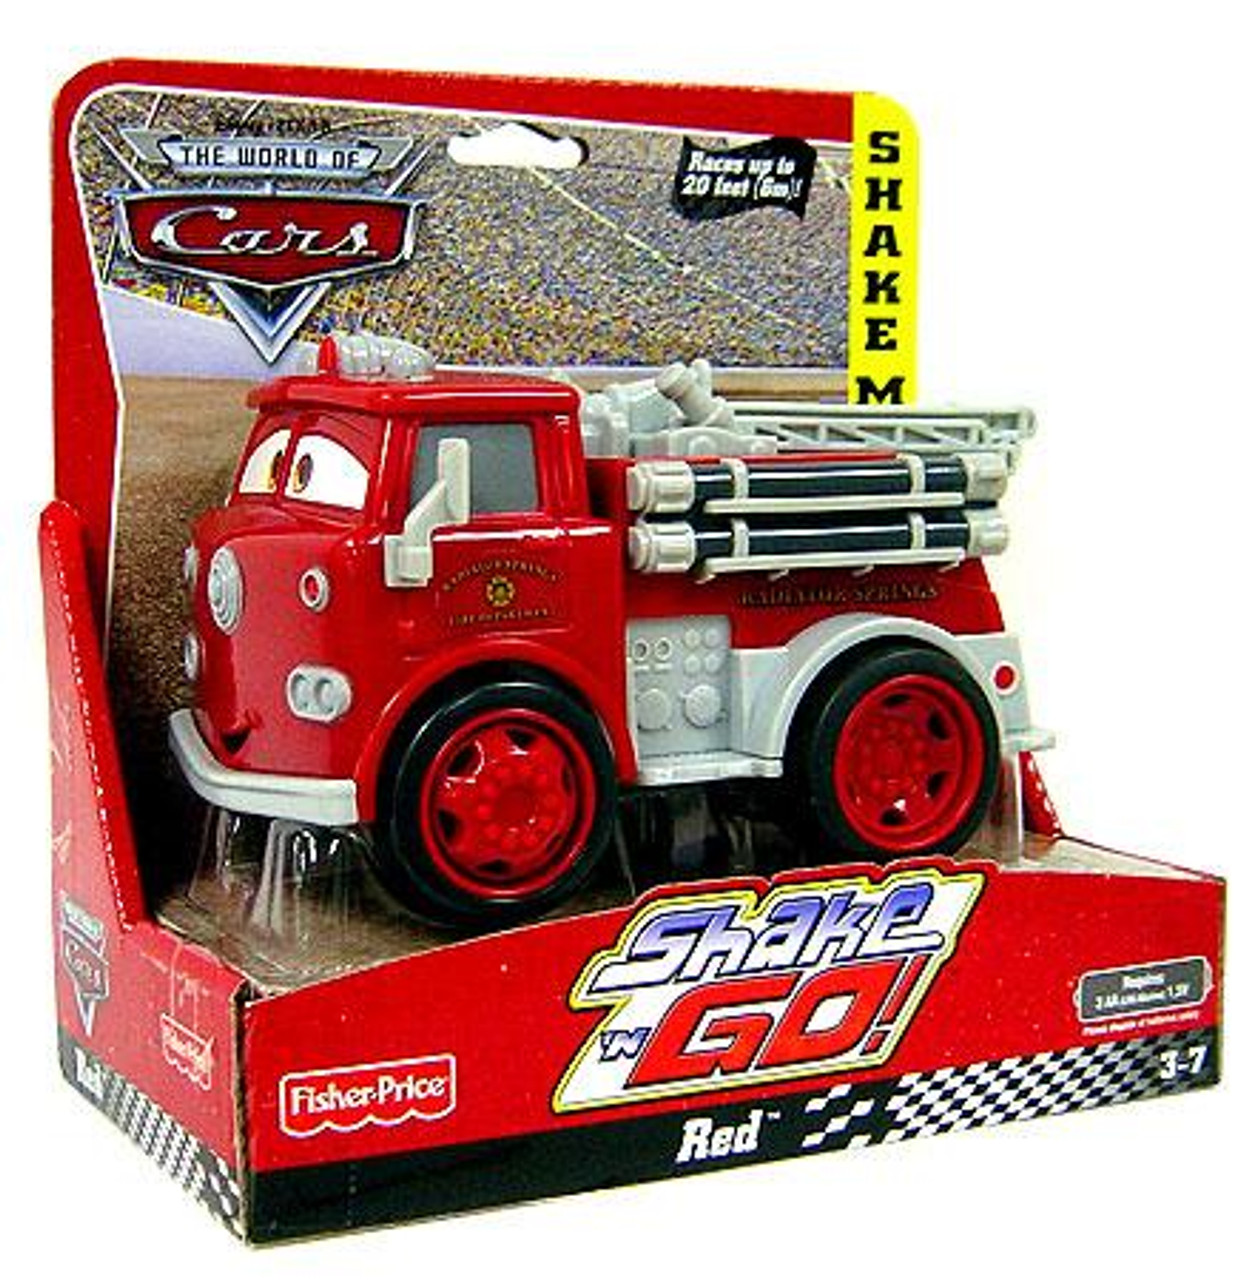 Disney Cars The World of Cars Shake 'N Go Red the Firetruck Shake 'N Go Car